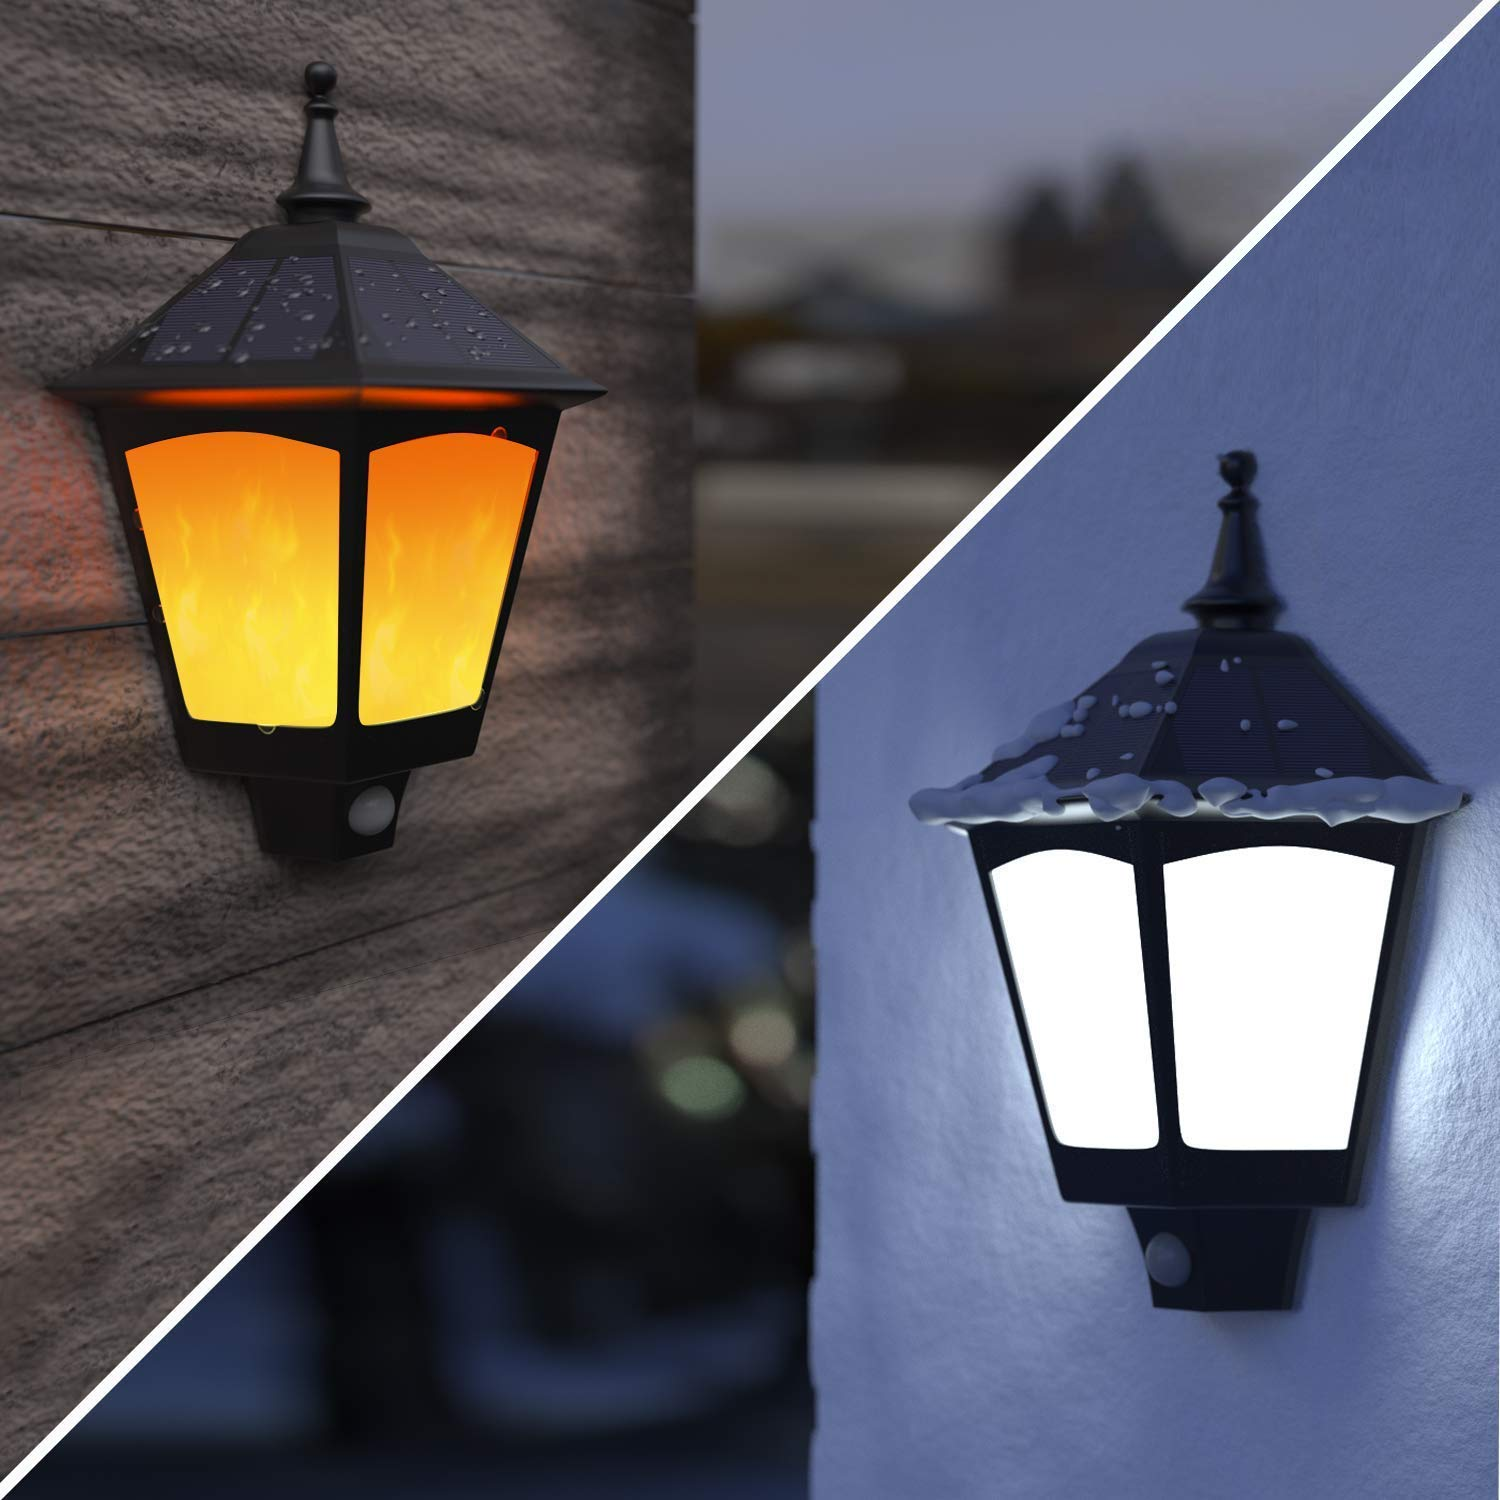 Two in One Solar Powered Wall Lamps